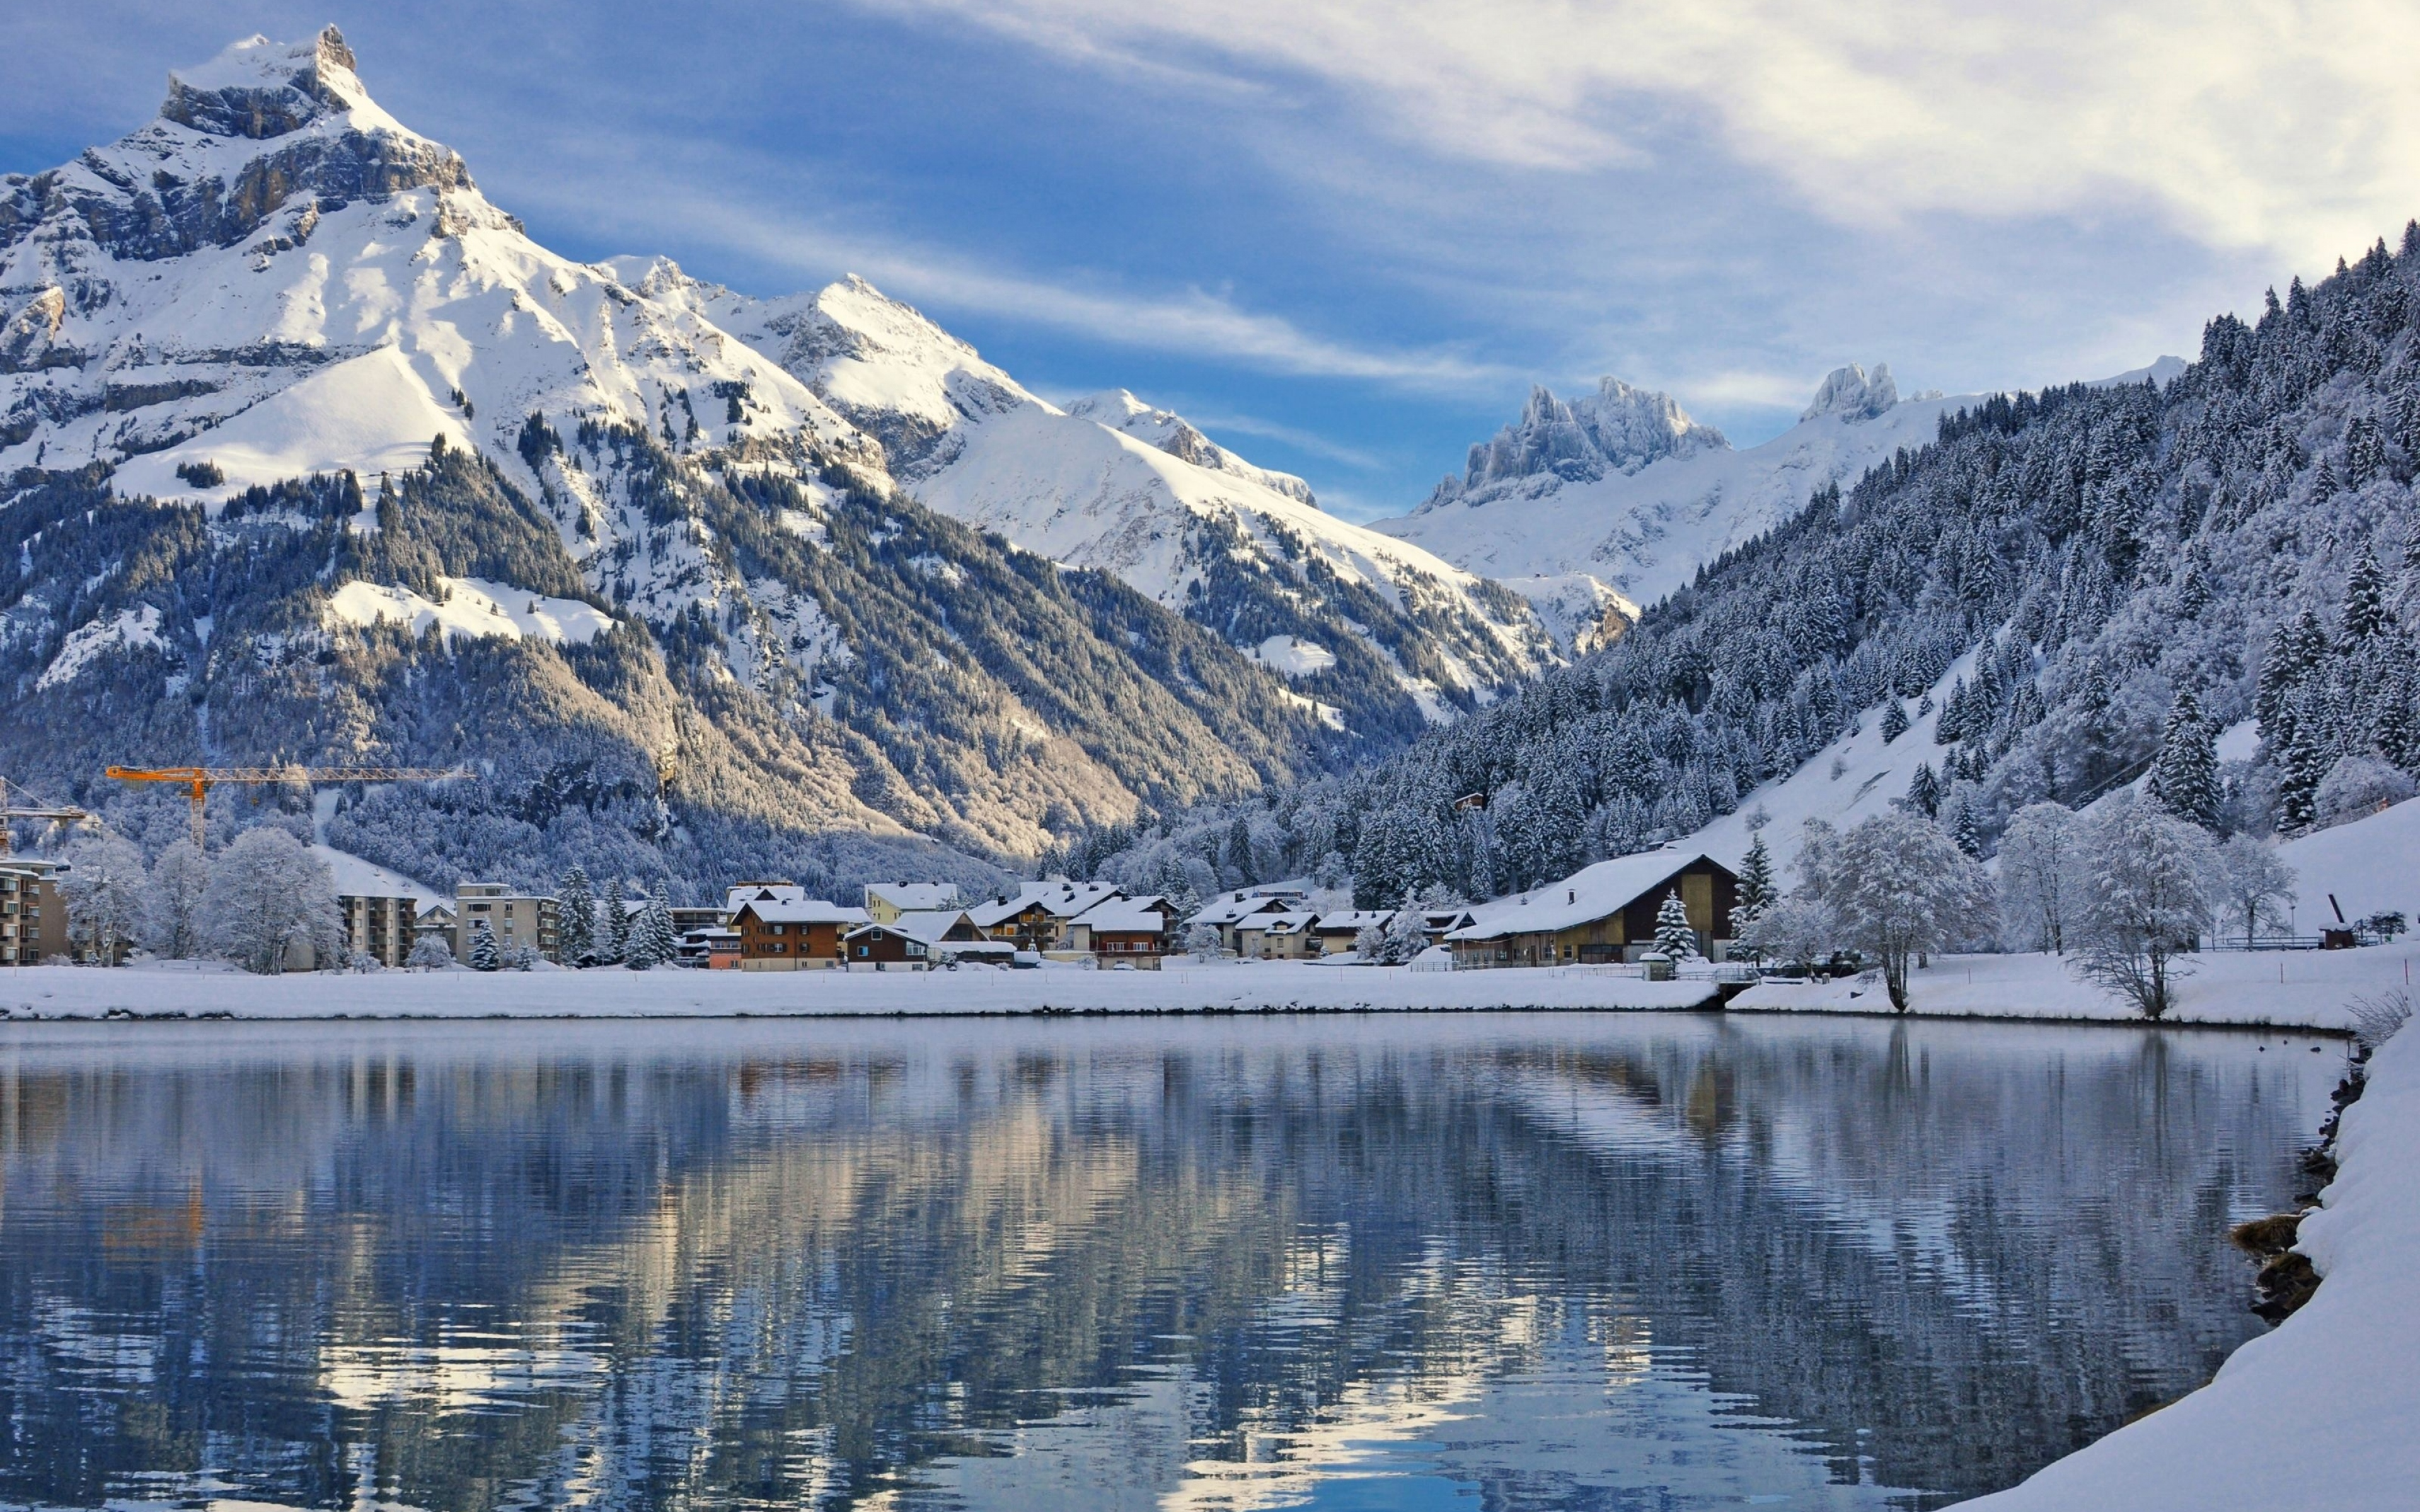 reflection in lake - things to do in Switzerland in winter